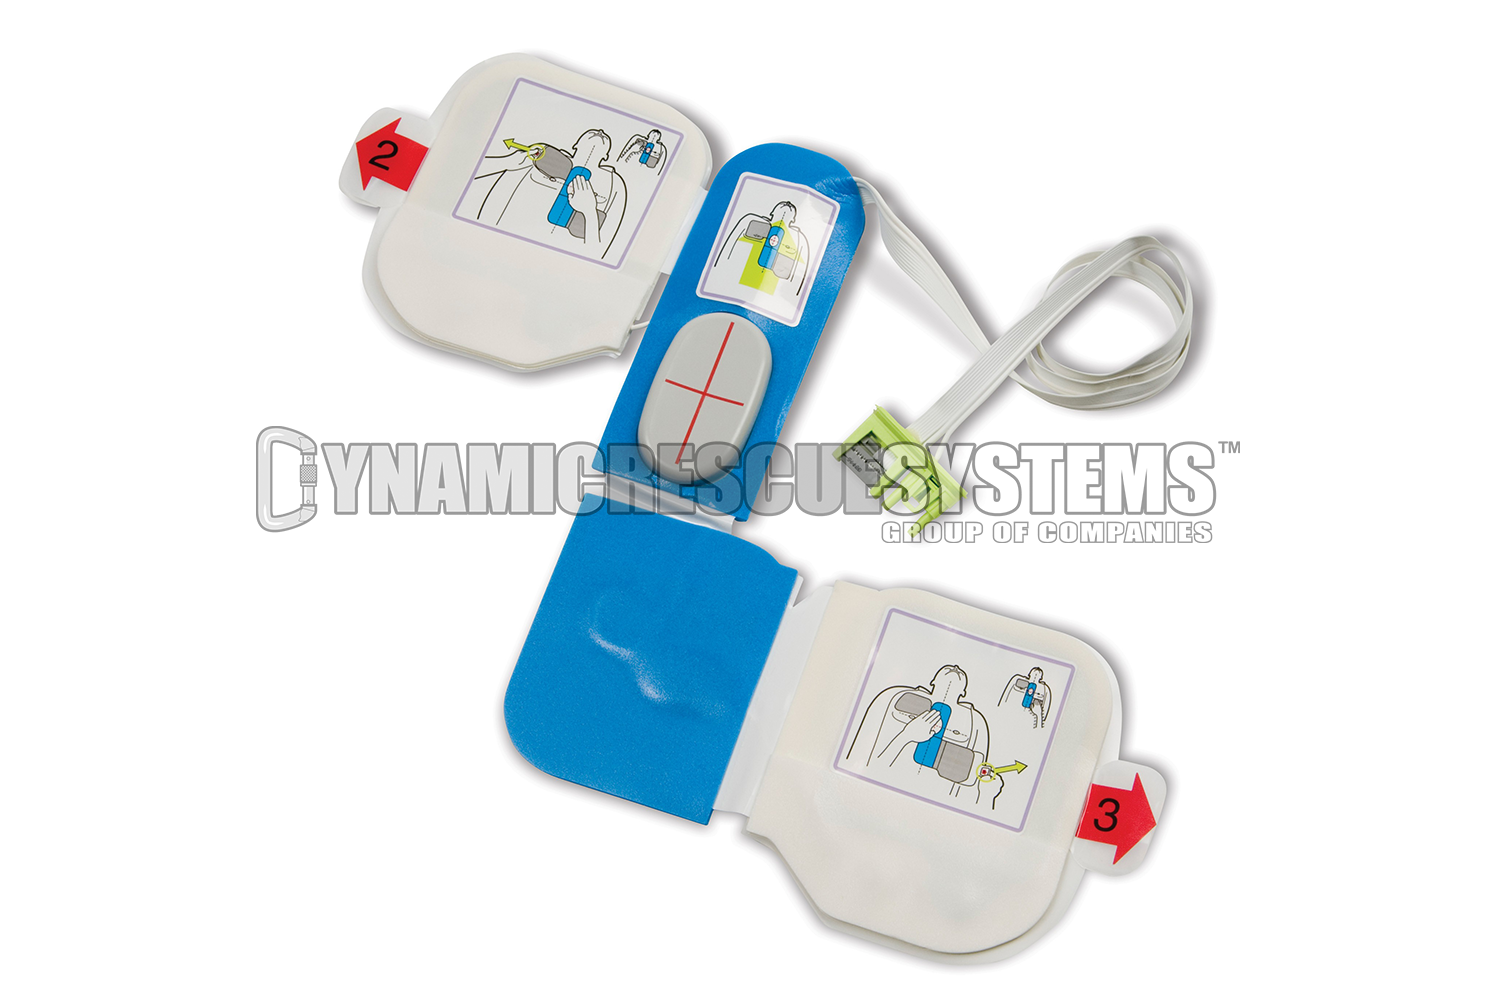 CPR-D Padz one piece defibrillation and CPR System Adult Electrode - Zoll - Zoll - Dynamic Rescue